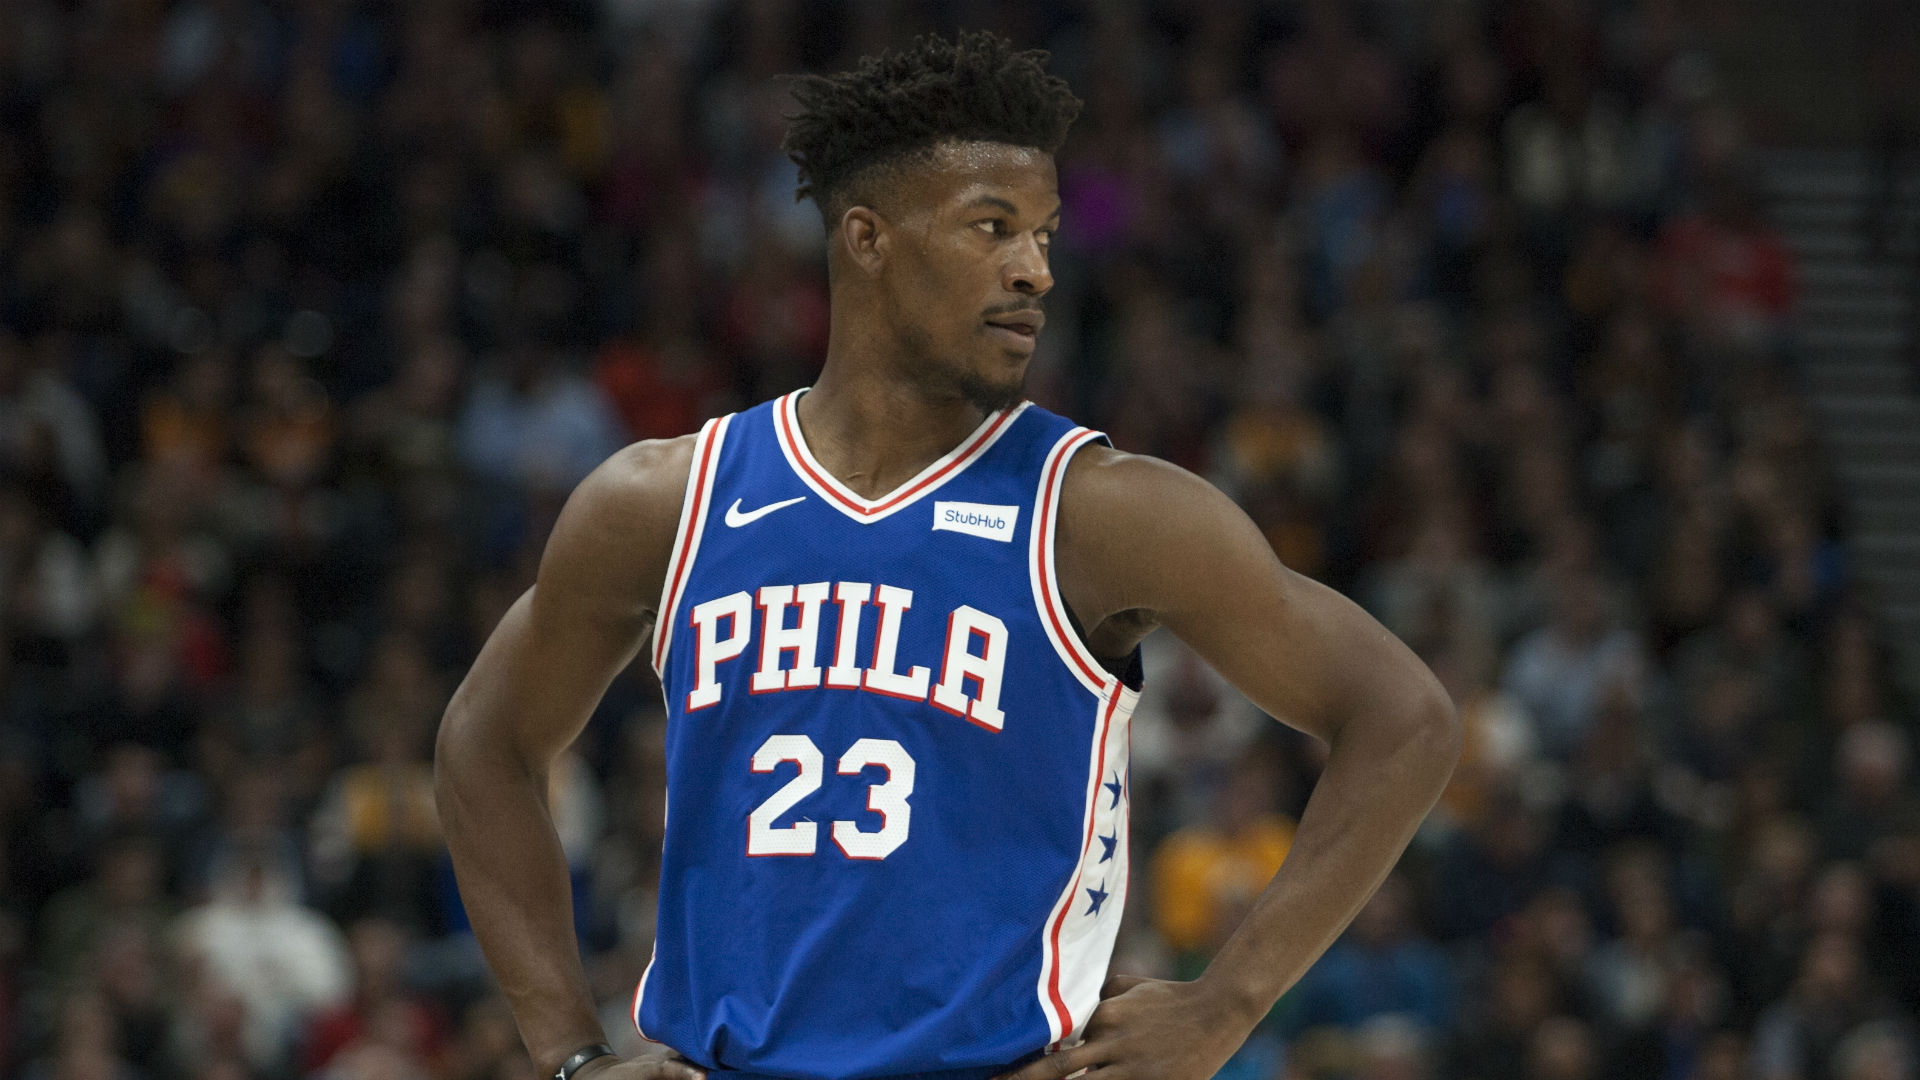 Jimmy Butler Has 'Aggressively Challenged' 76ers Coach Brett Brown About His Role